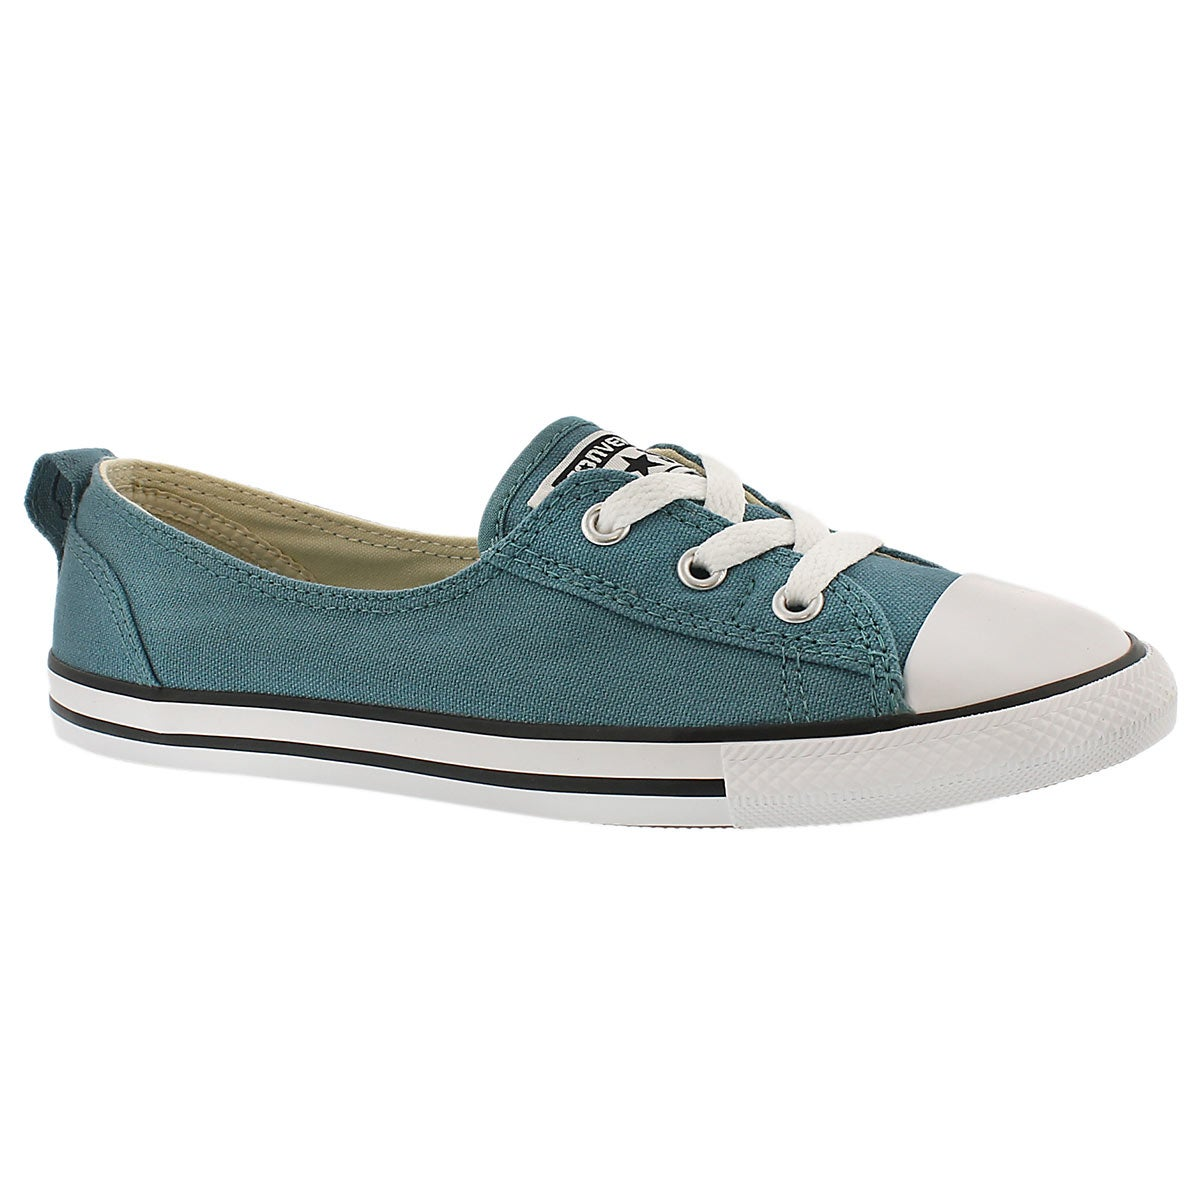 Lds CT A/S Ballet Lace sea blue slip on